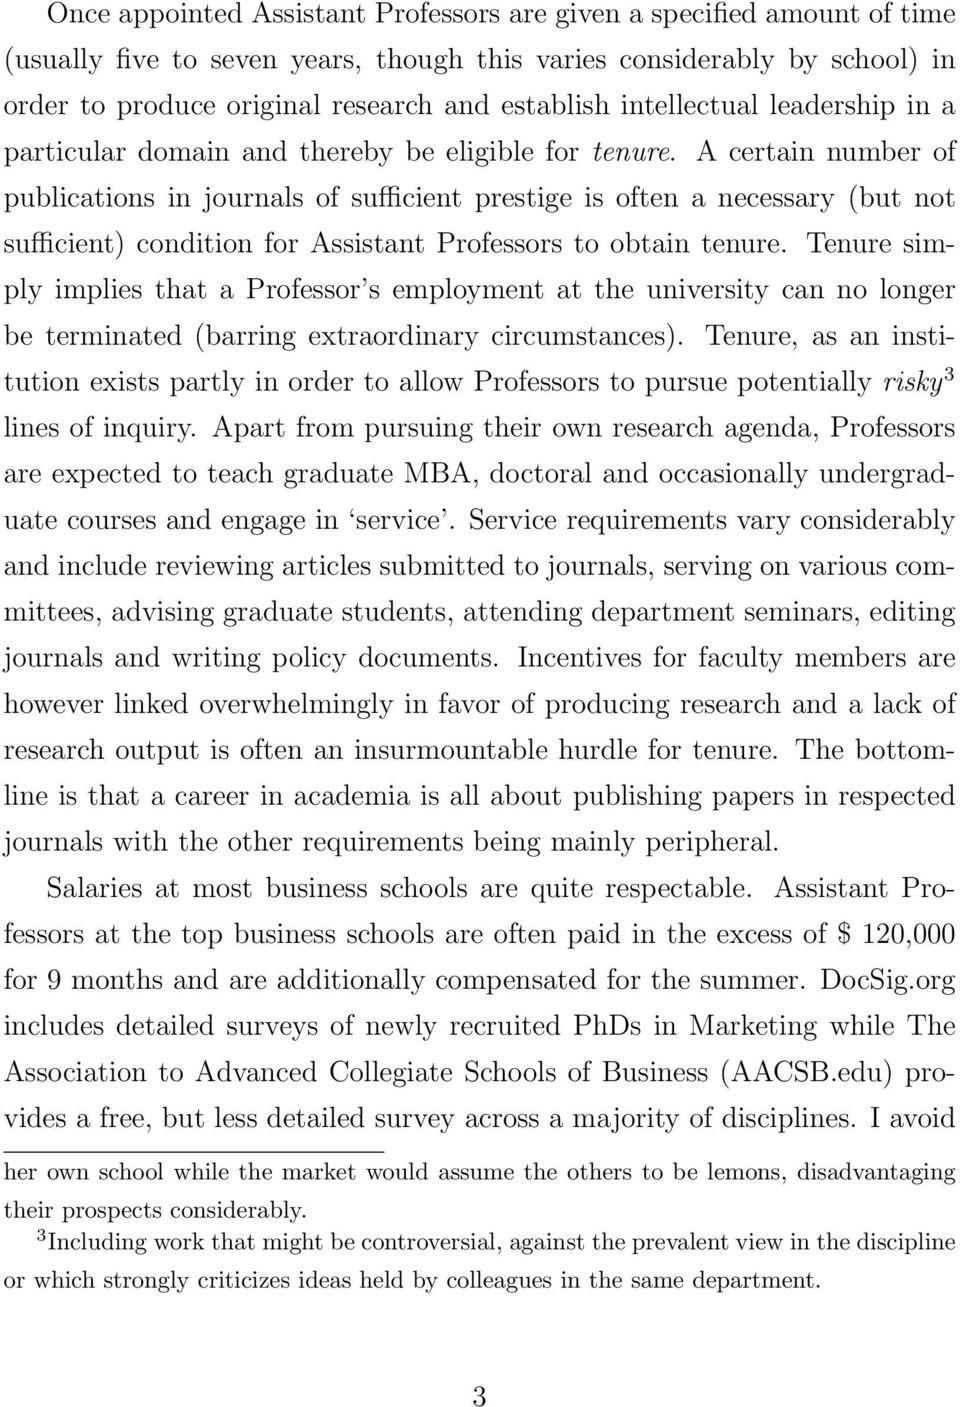 A certain number of publications in journals of sufficient prestige is often a necessary (but not sufficient) condition for Assistant Professors to obtain tenure.